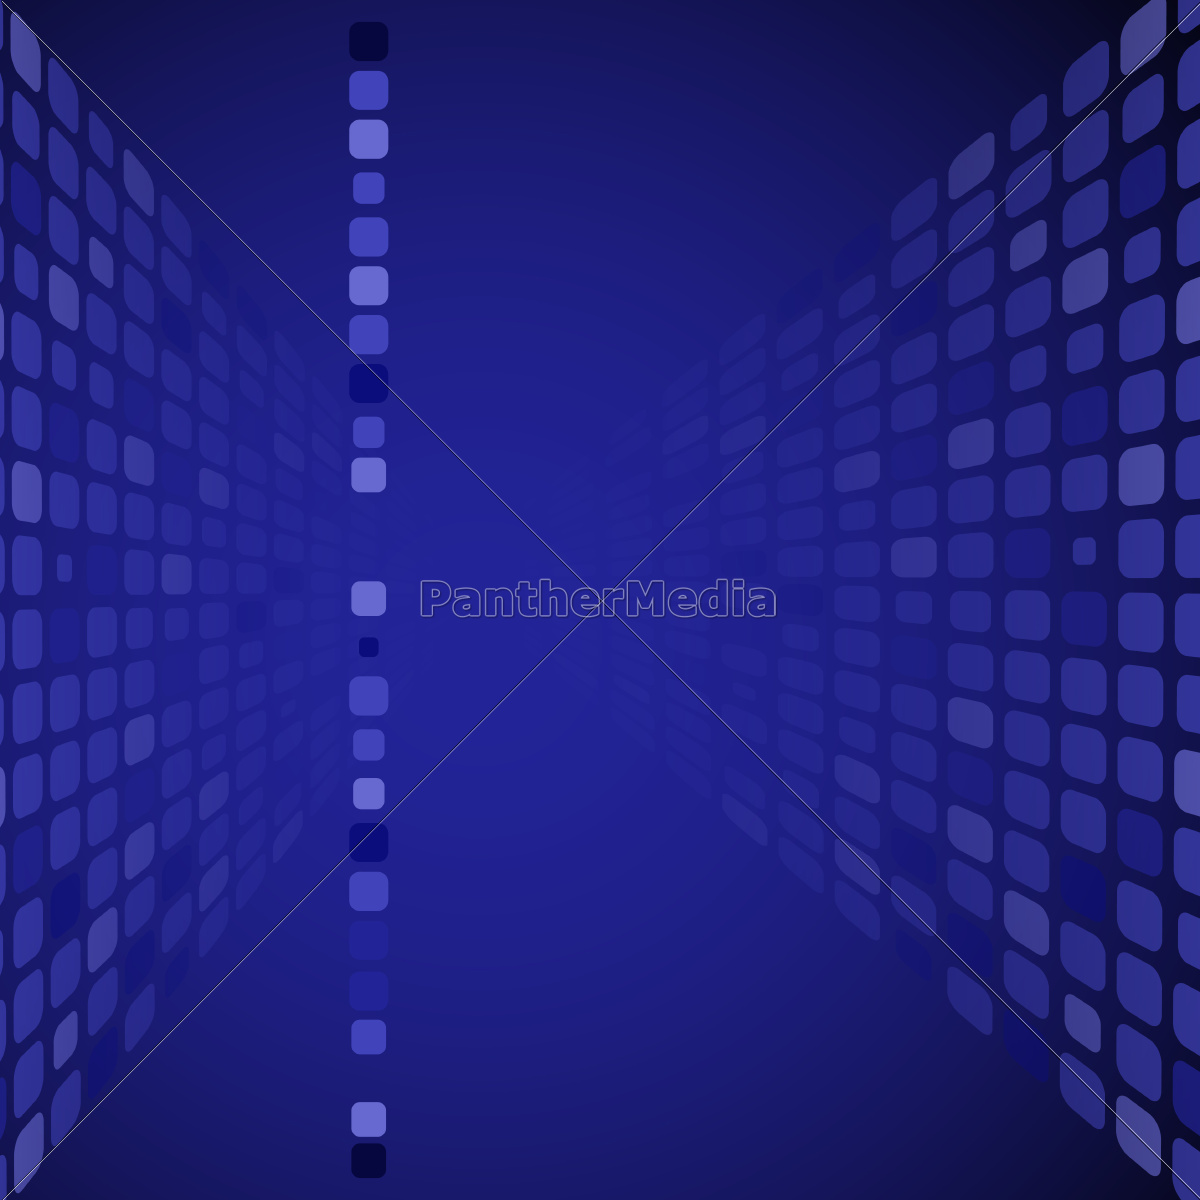 perspective, blue, rectangles, background. - 10186653